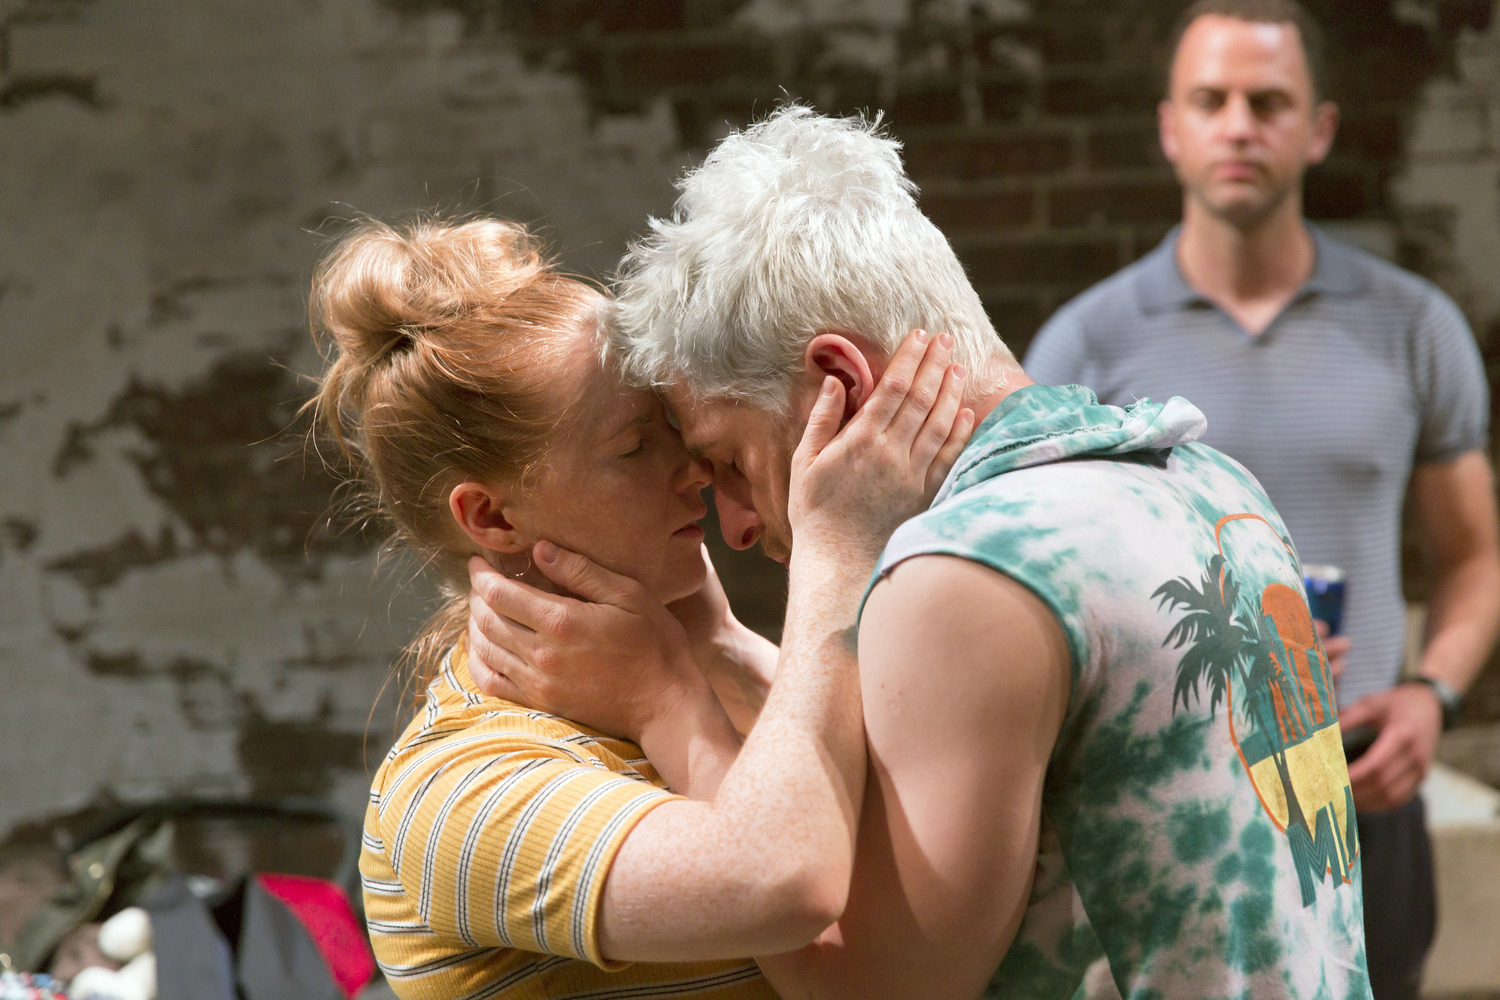 BWW Review: Searching for Sanctuary in SHELTER